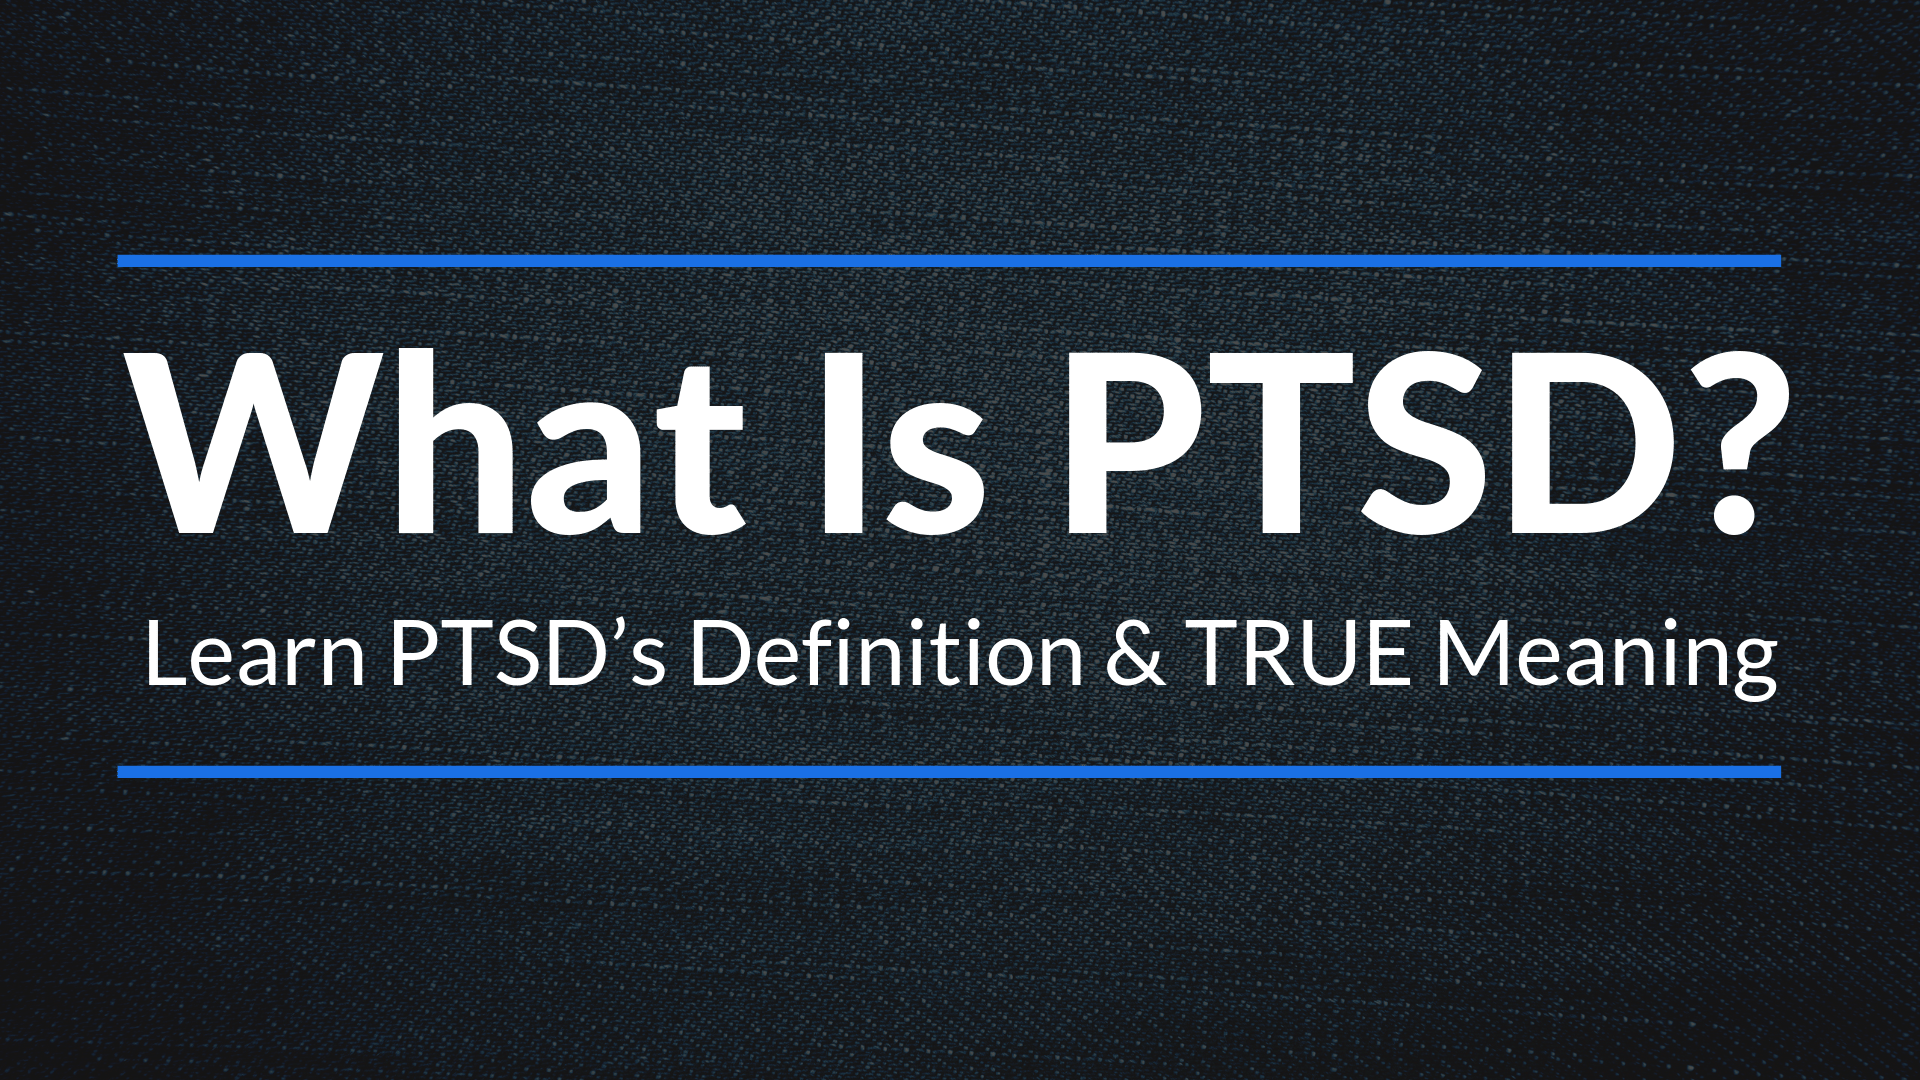 What is PTSD? Learn The Definition & TRUE Meaning of PTSD